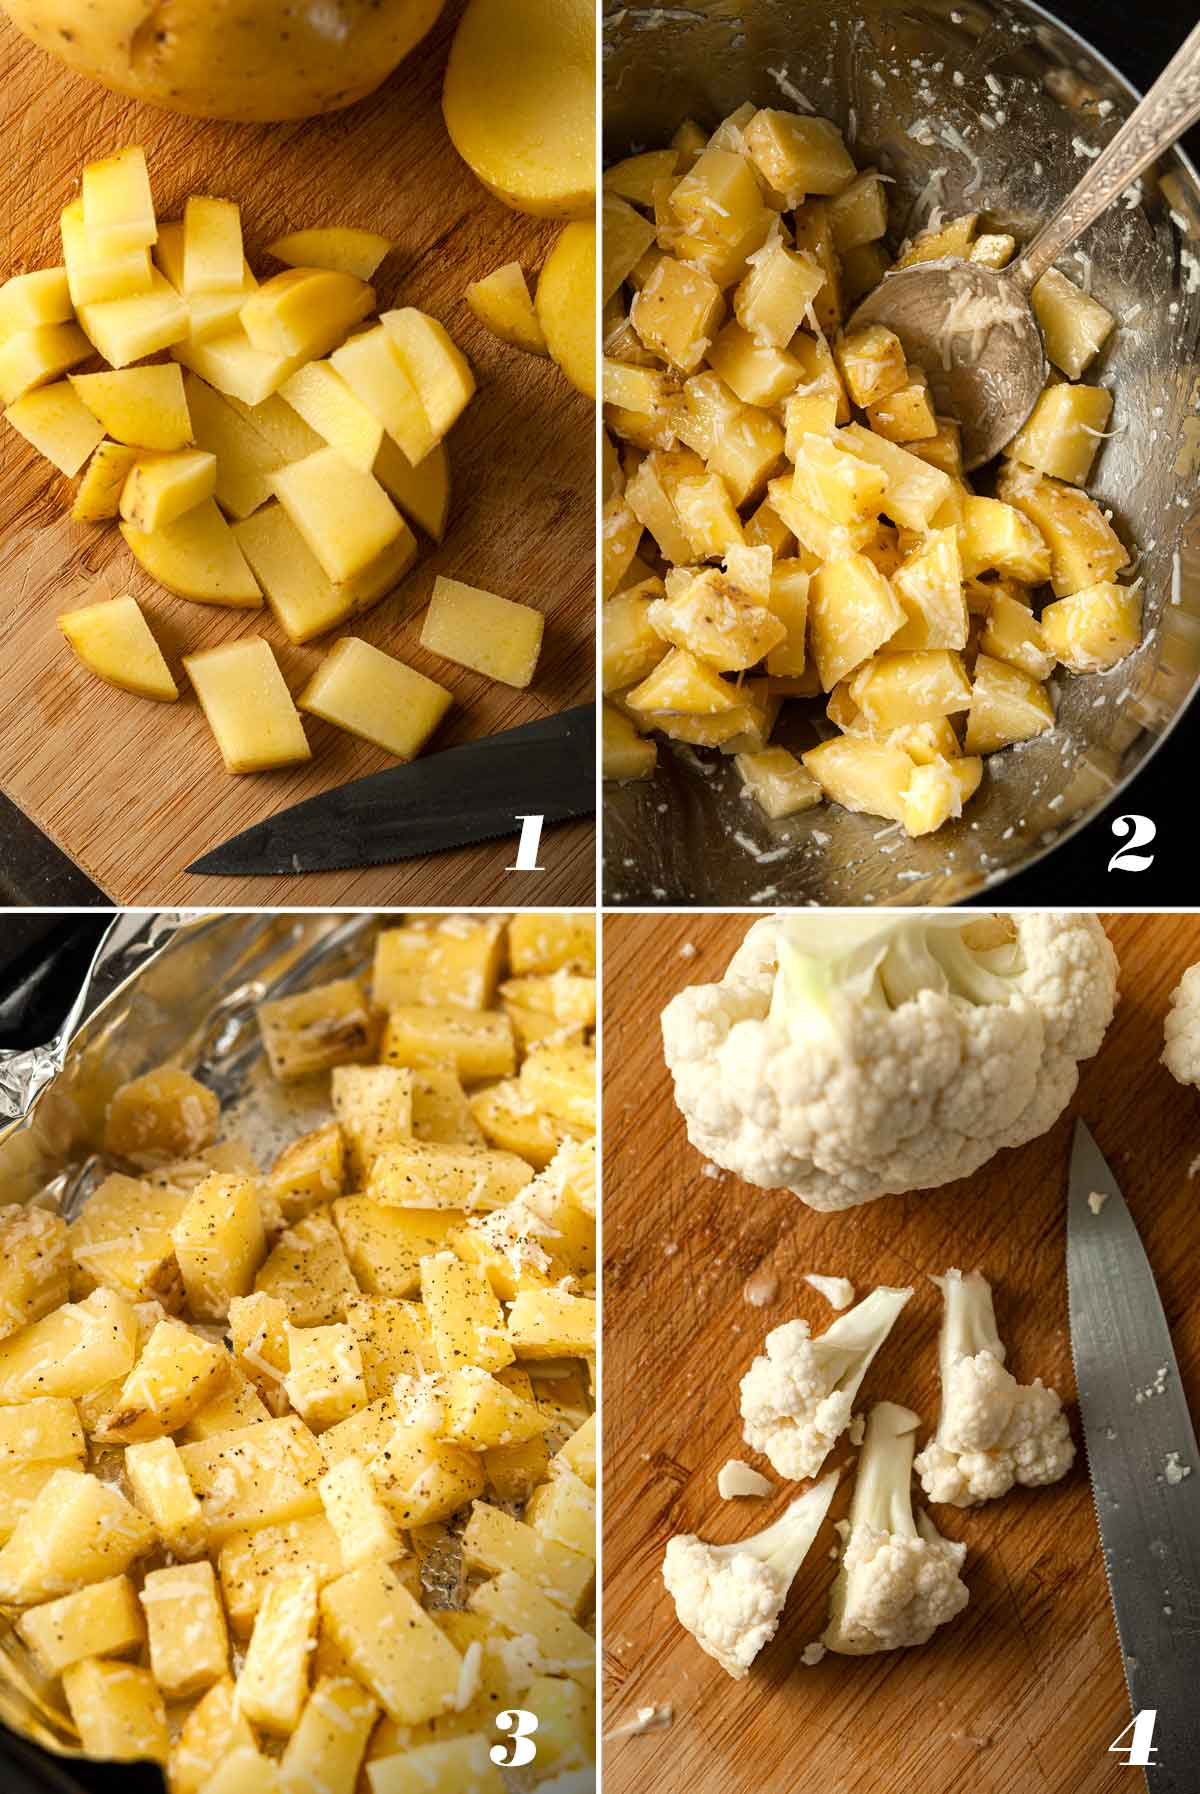 A collage of 4 numbered images showing how to prepare potato for Cauliflower and Kale Potato Hash.